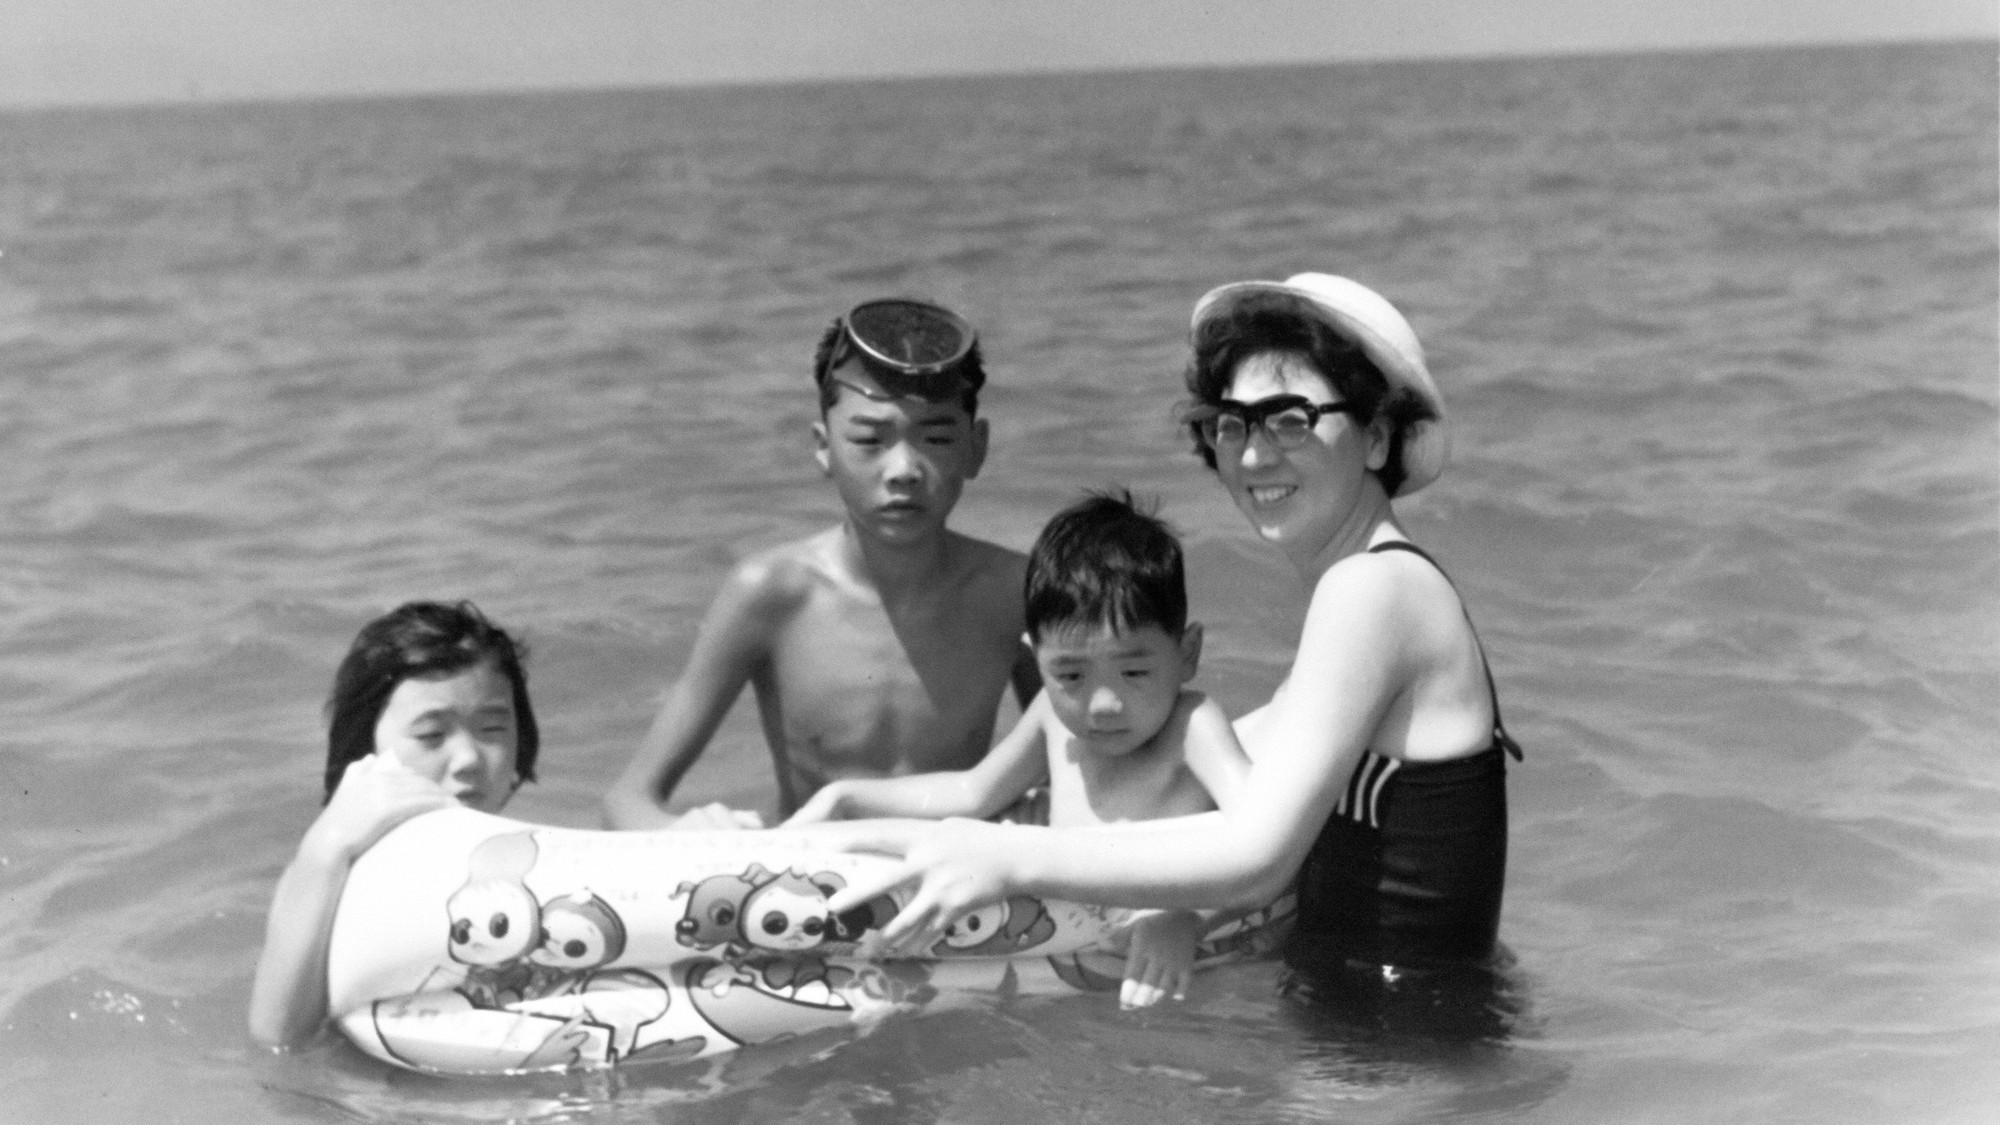 In a black and white photo a woman and three children are at the beach, they are in the water with a floatie device